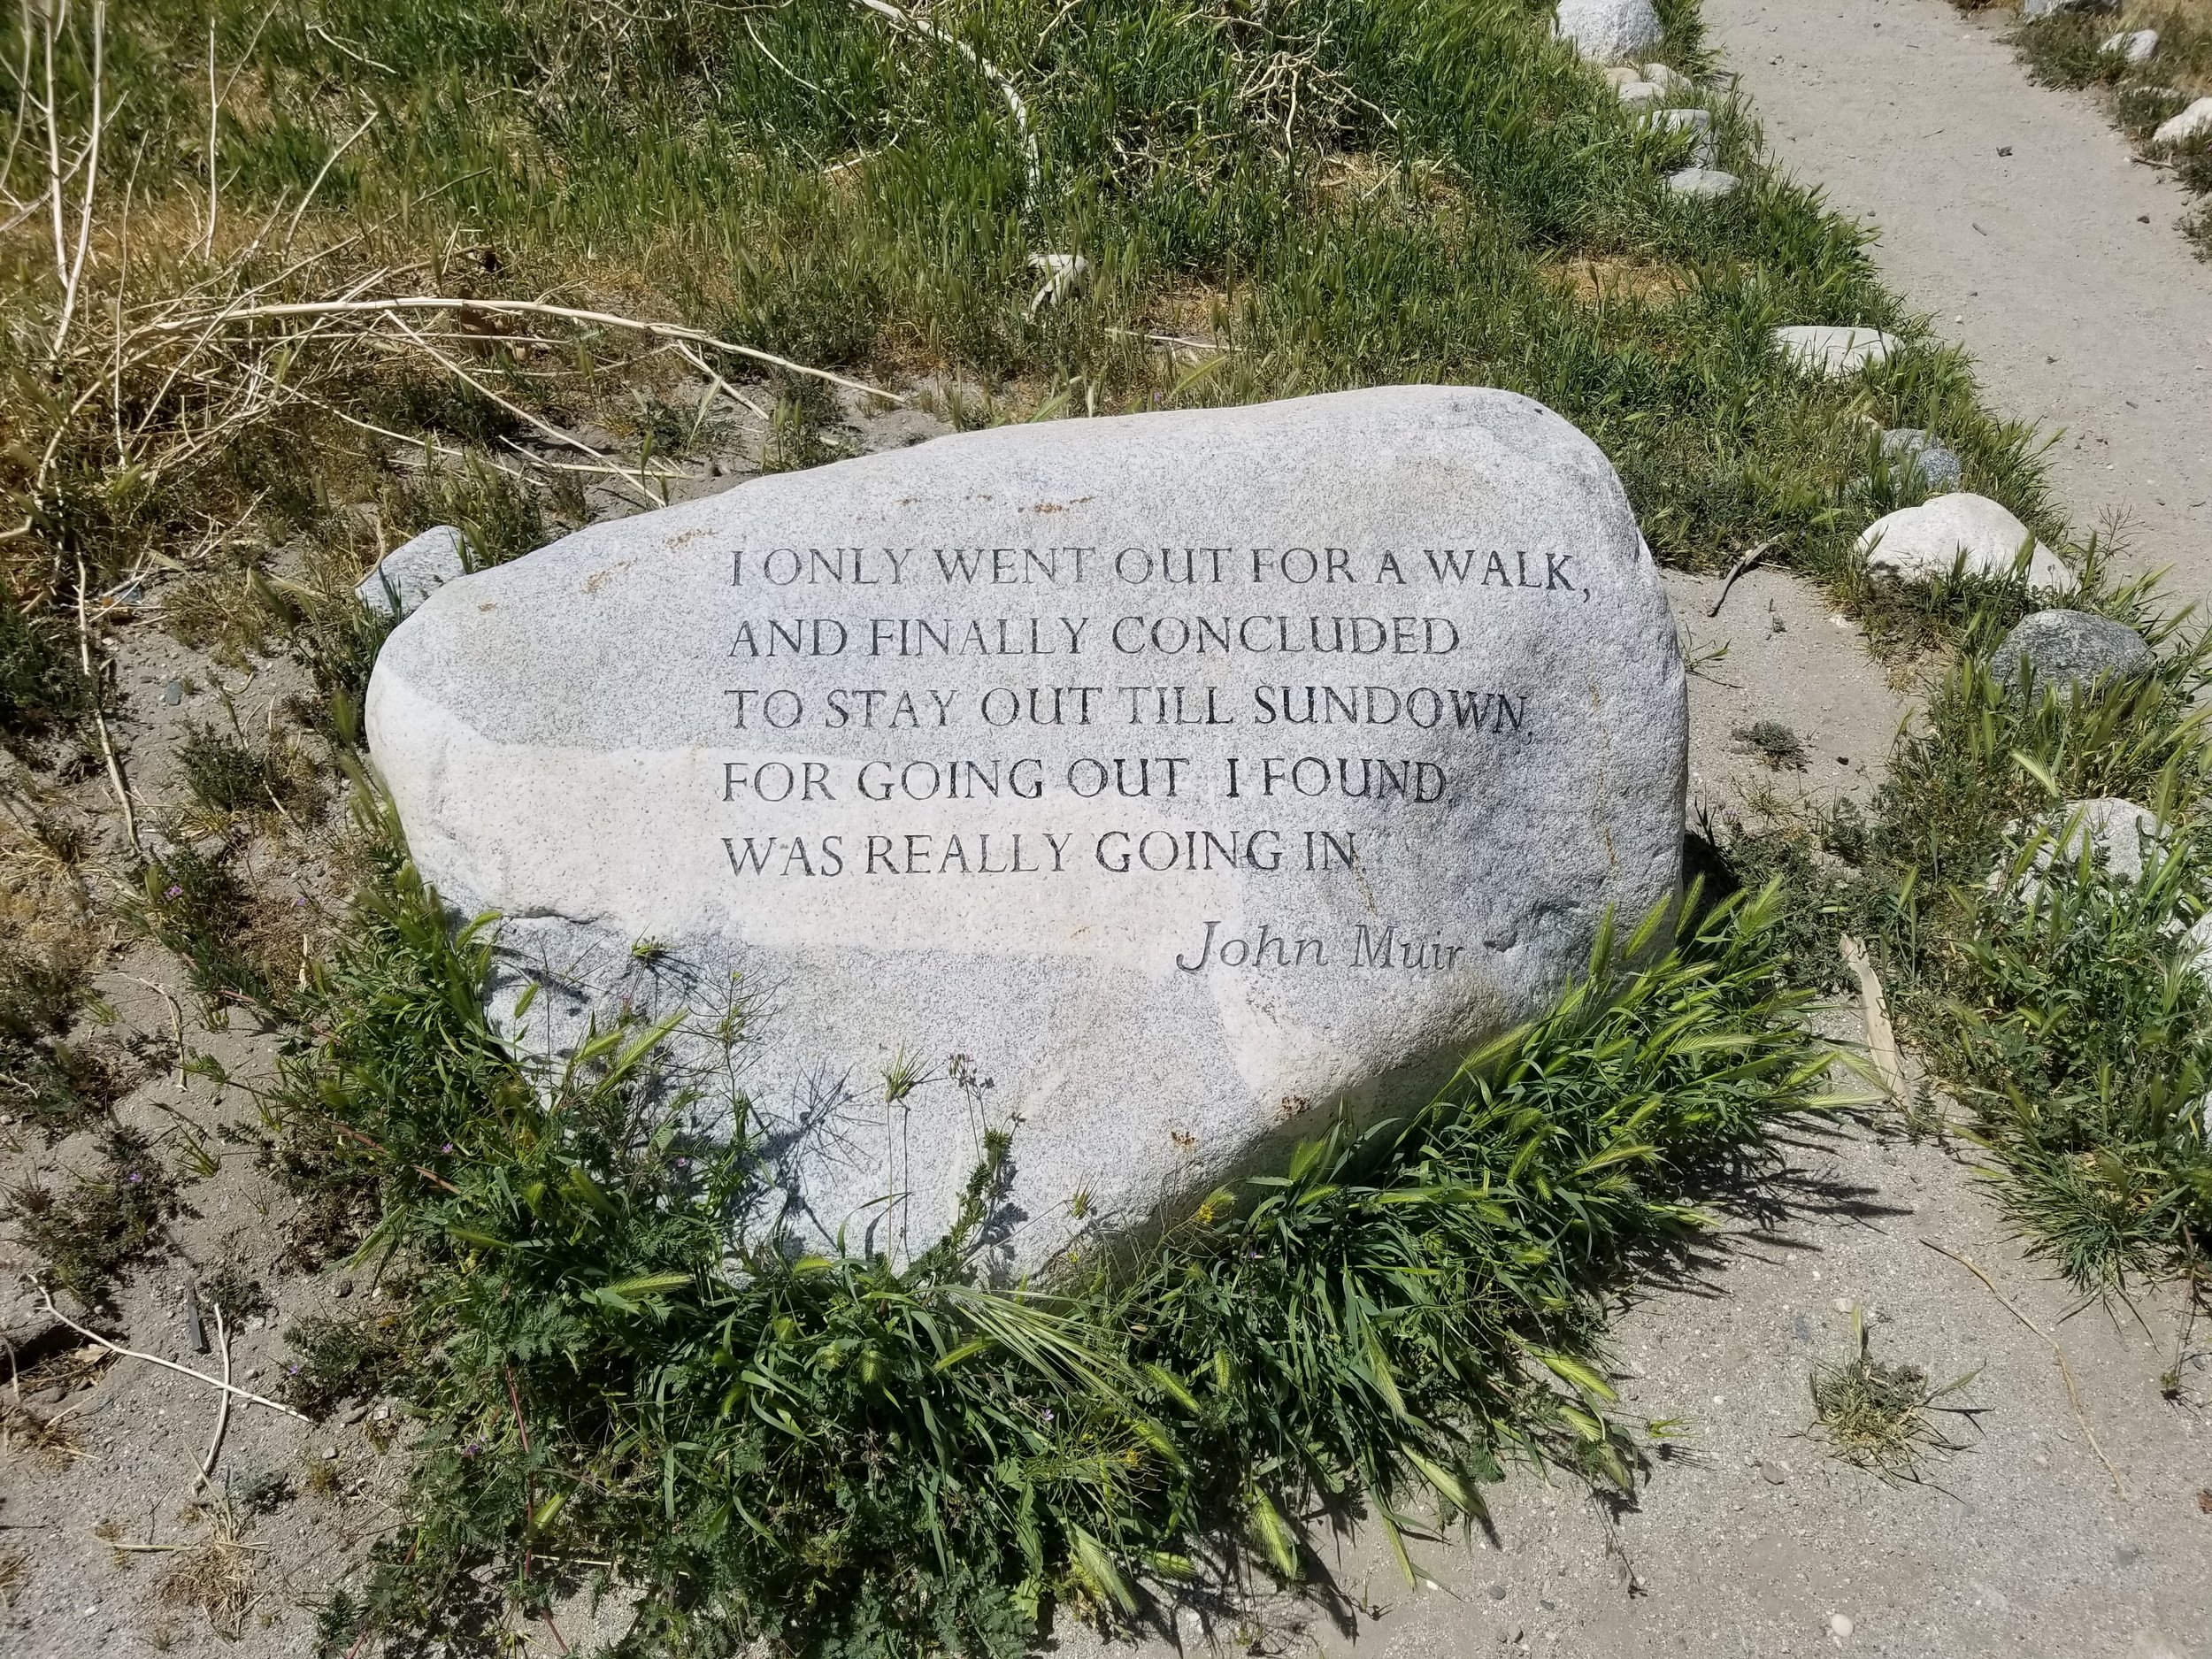 Very appropriate quote found at the Whitewater Preserve